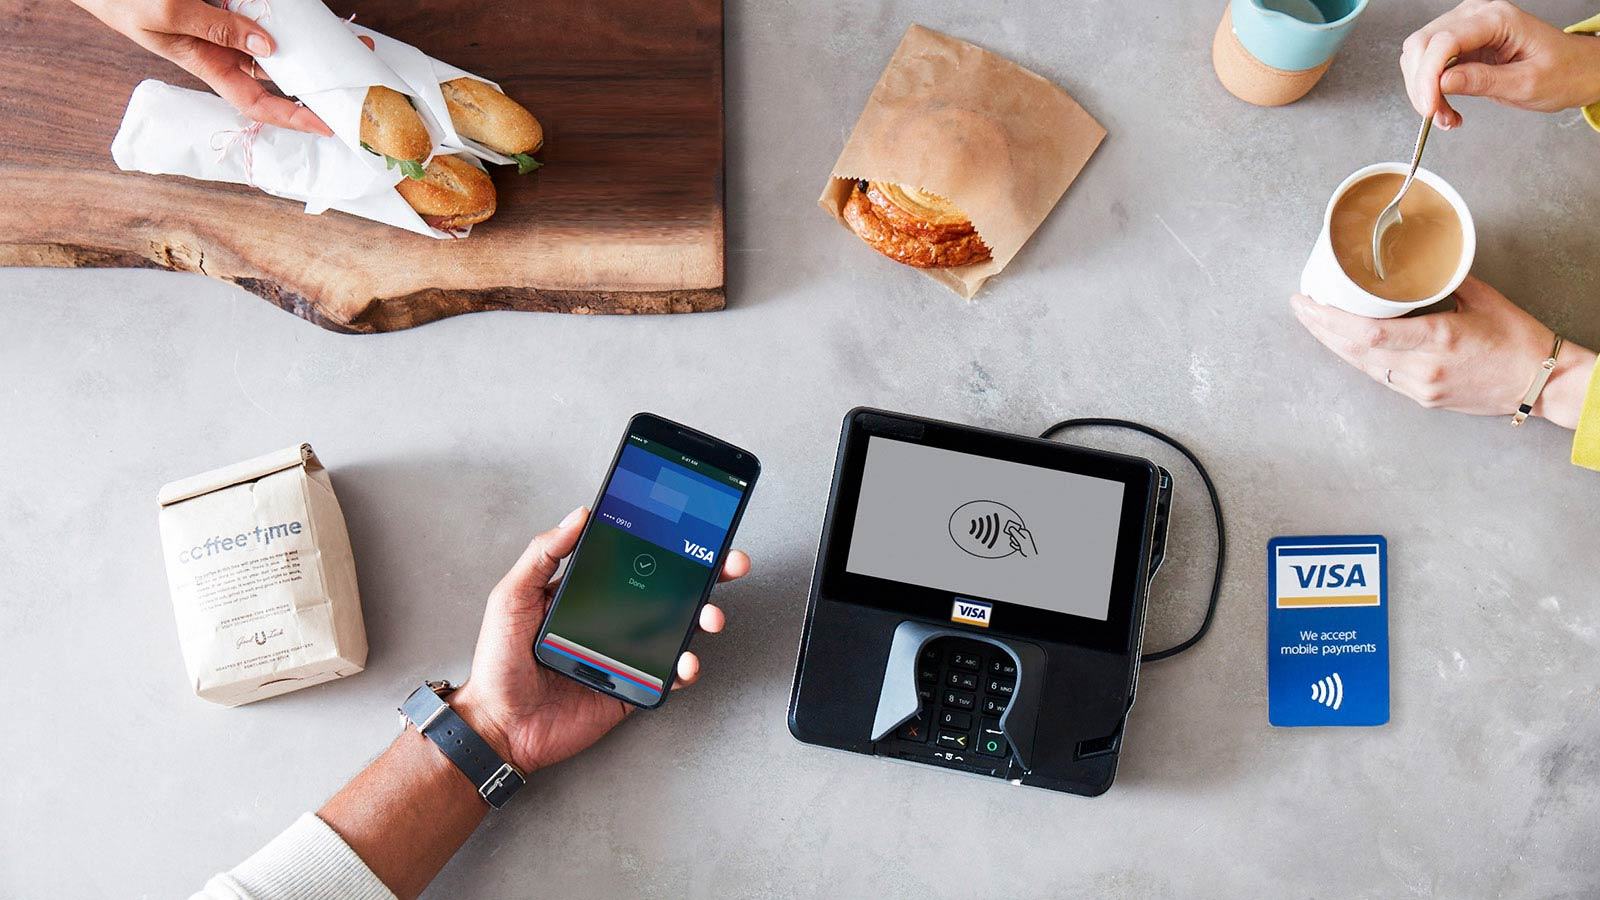 Paying for coffee shop items with Apple Pay at a contactless-enabled terminal.